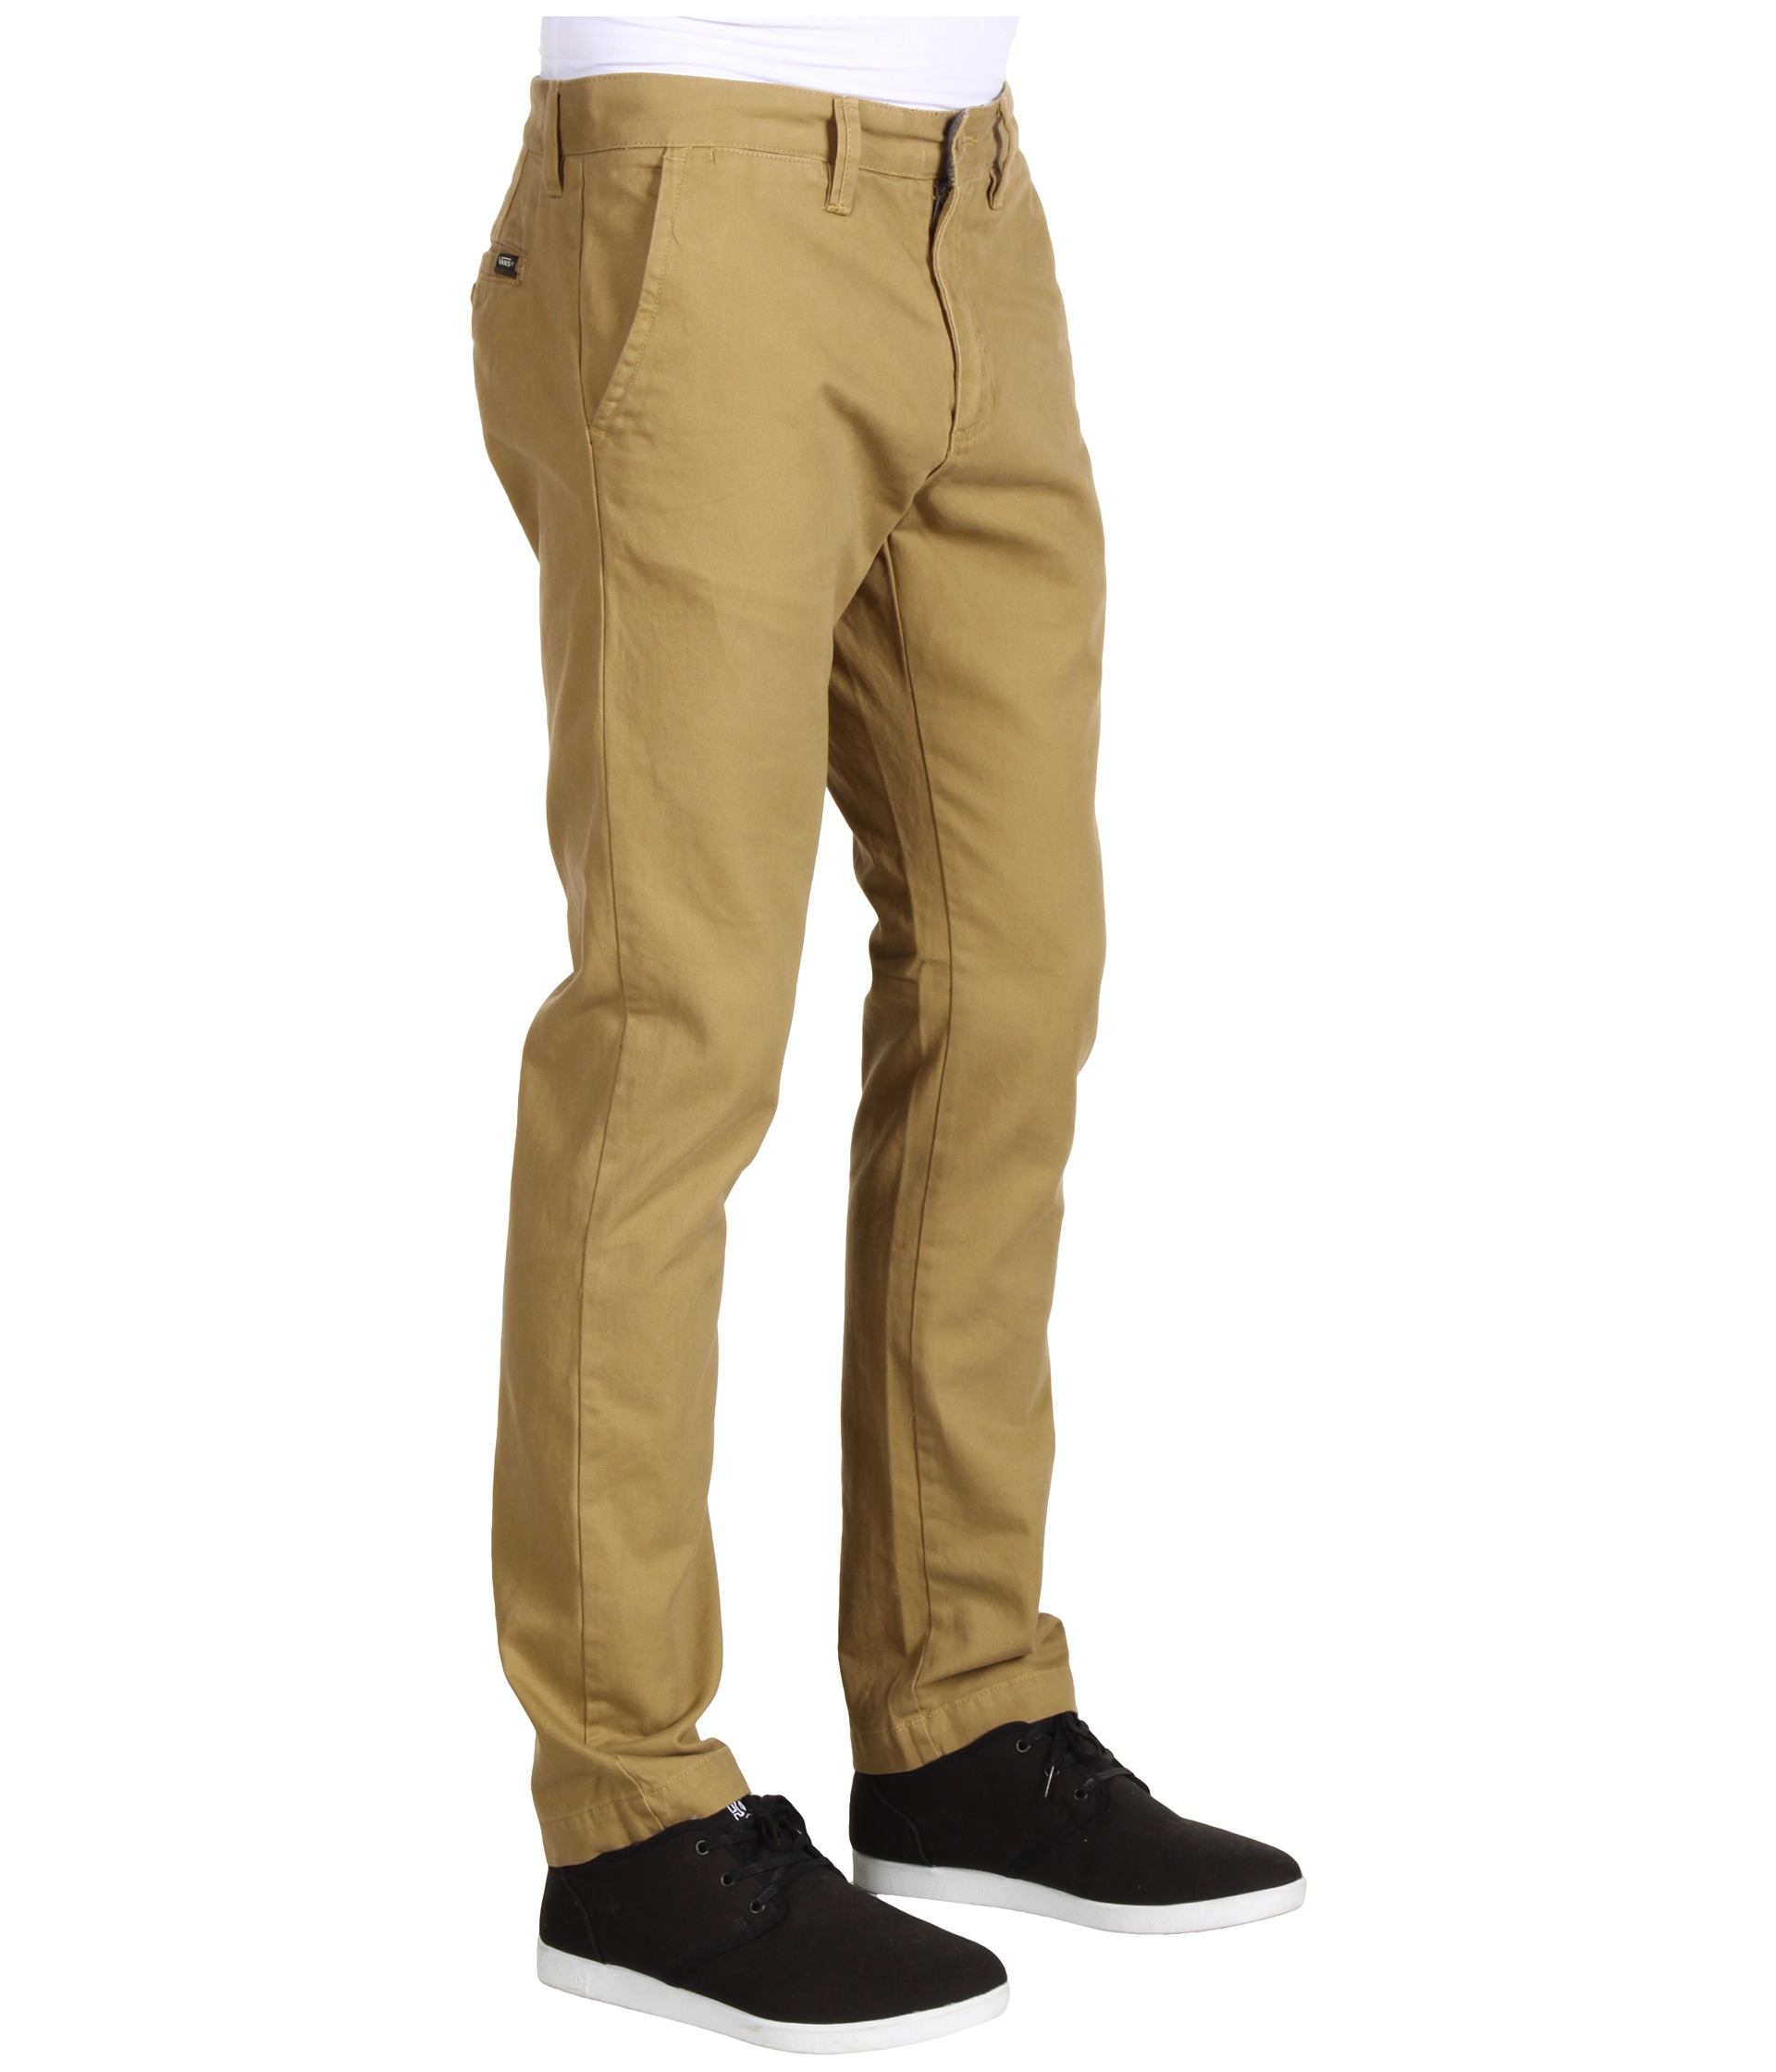 An excellent place to start is with a high-quality pair of black chino pants. You can pair black chino pants with anything, from your favorite graphic tees to your best button up shirt. If black chino pants are too boring for you, try a pair of printed chino pants.